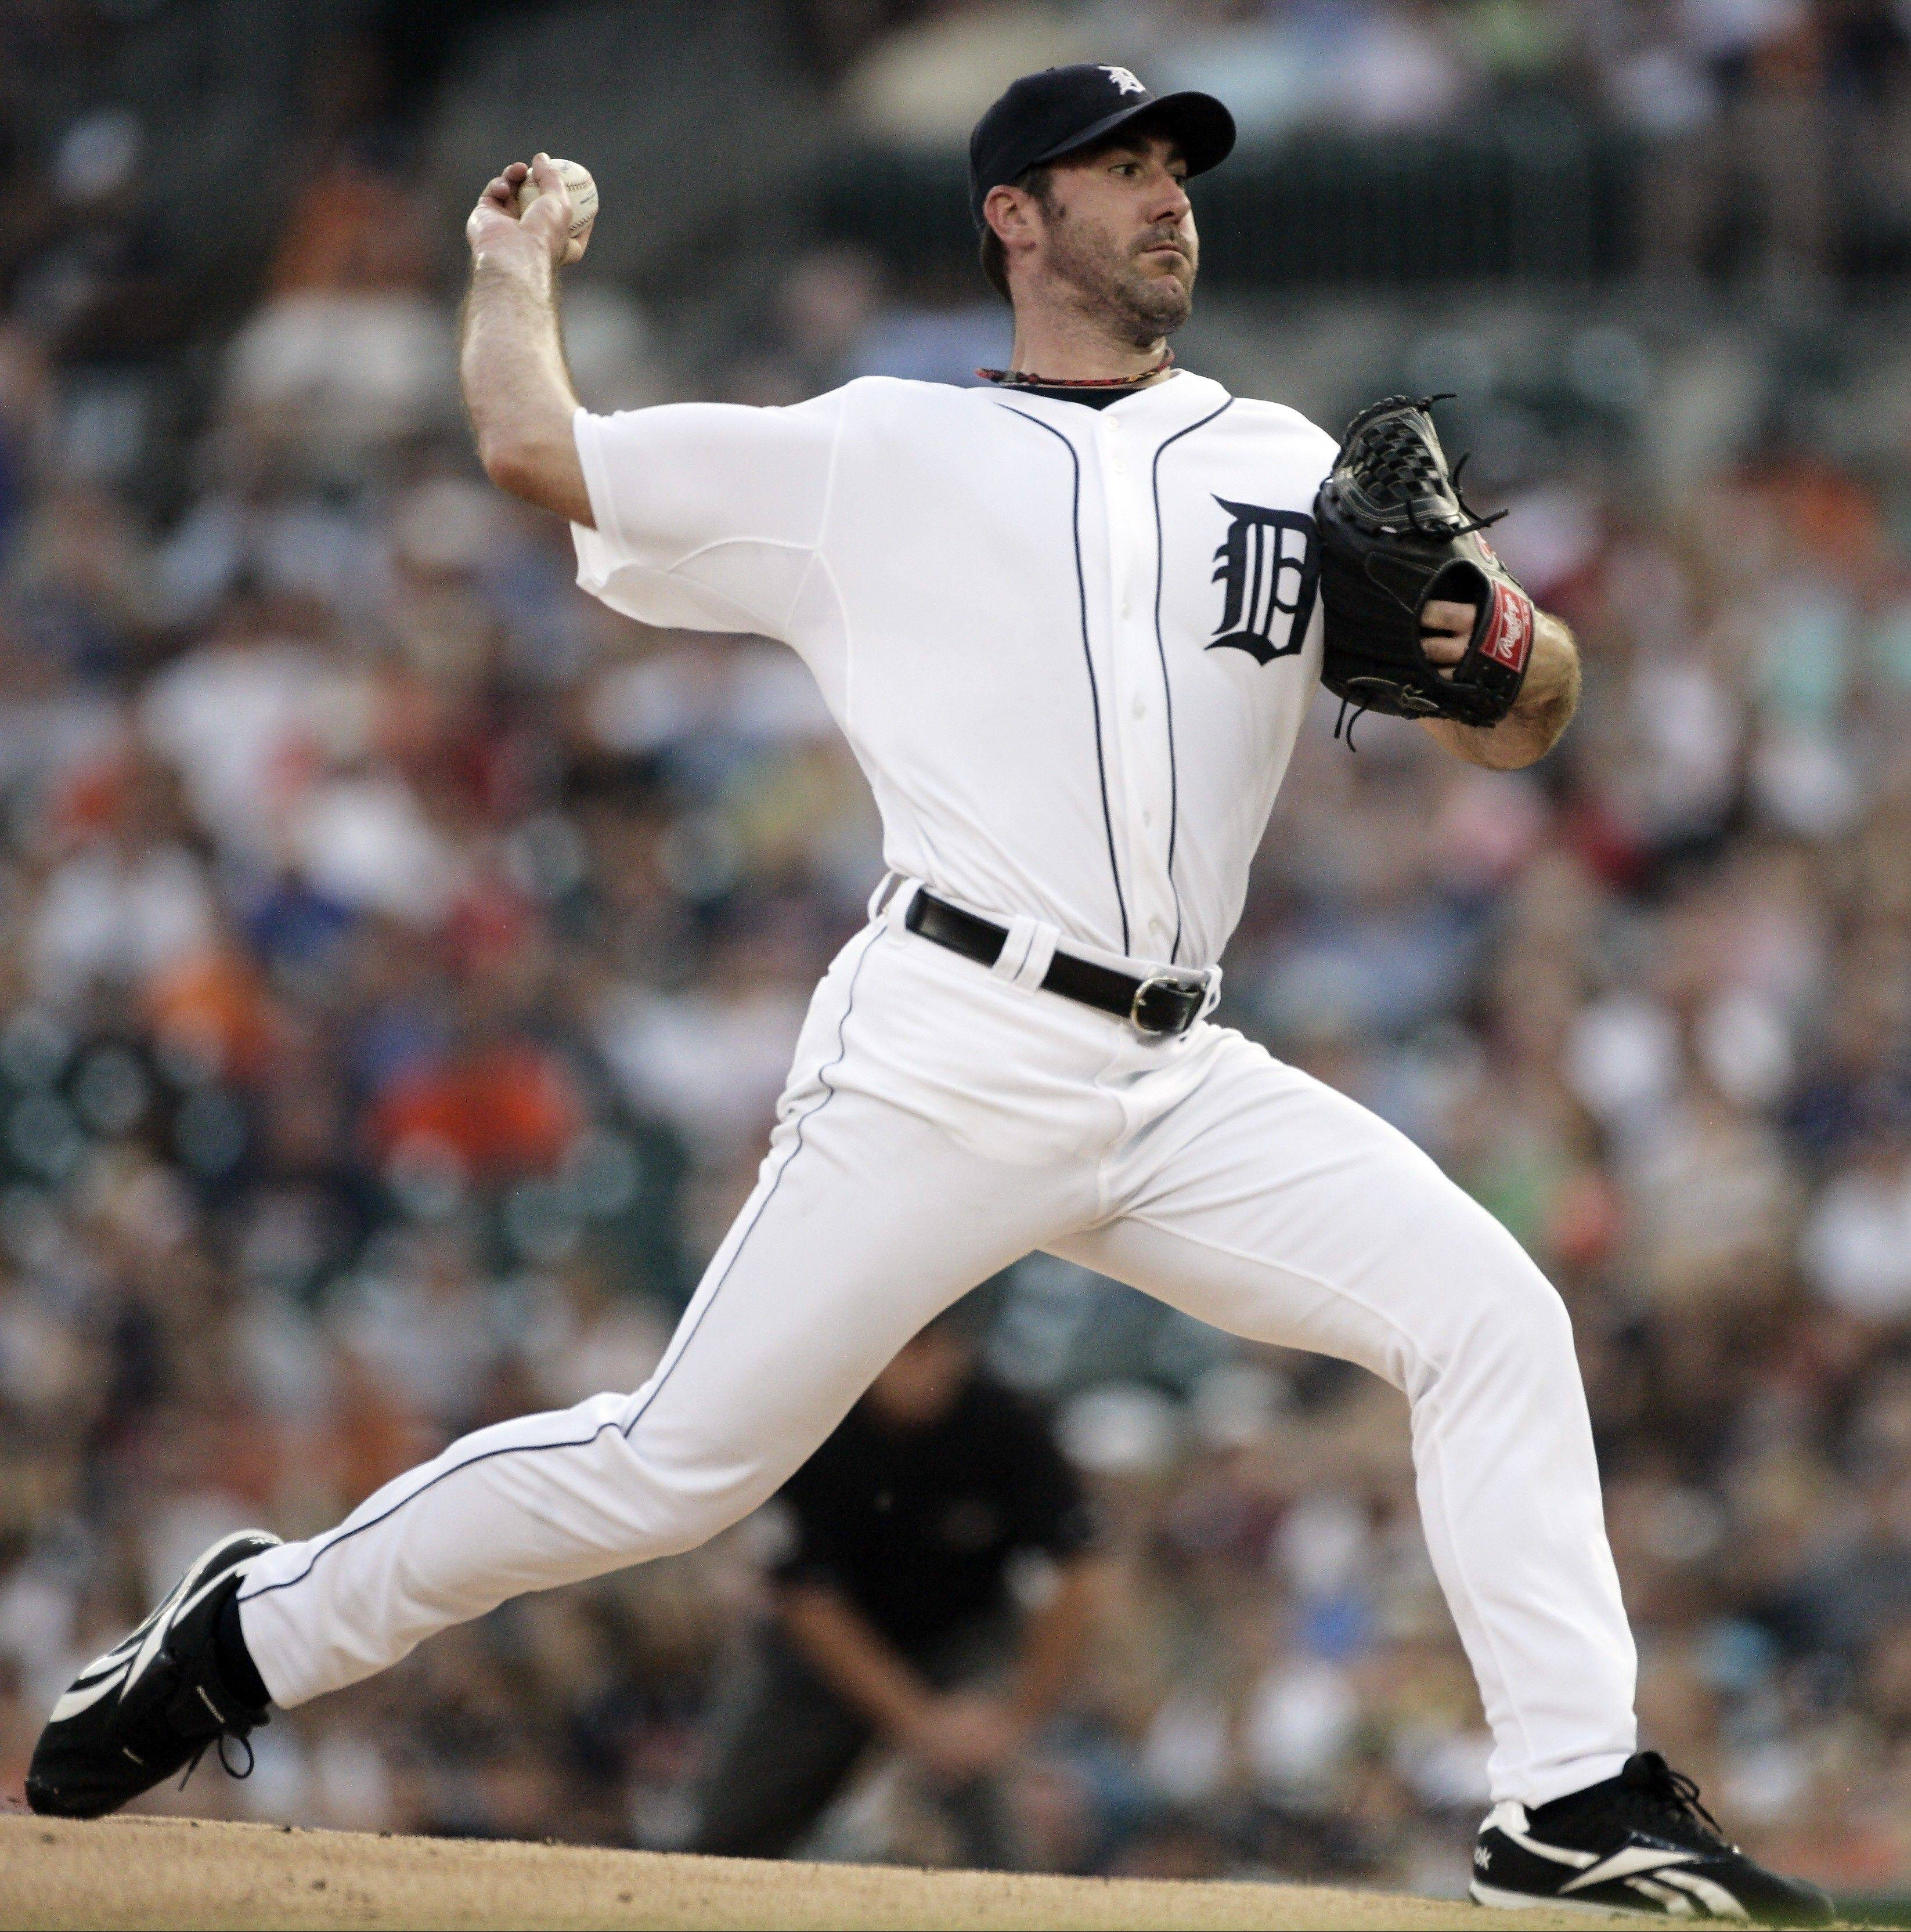 Tigers starter Justin Verlander (21-5) mows down the White Sox on Friday night at Comerica Park in Detroit. Verlander, who allowed 1 run on 7 hits in 7⅓ innings, is 19-2 since May 1.